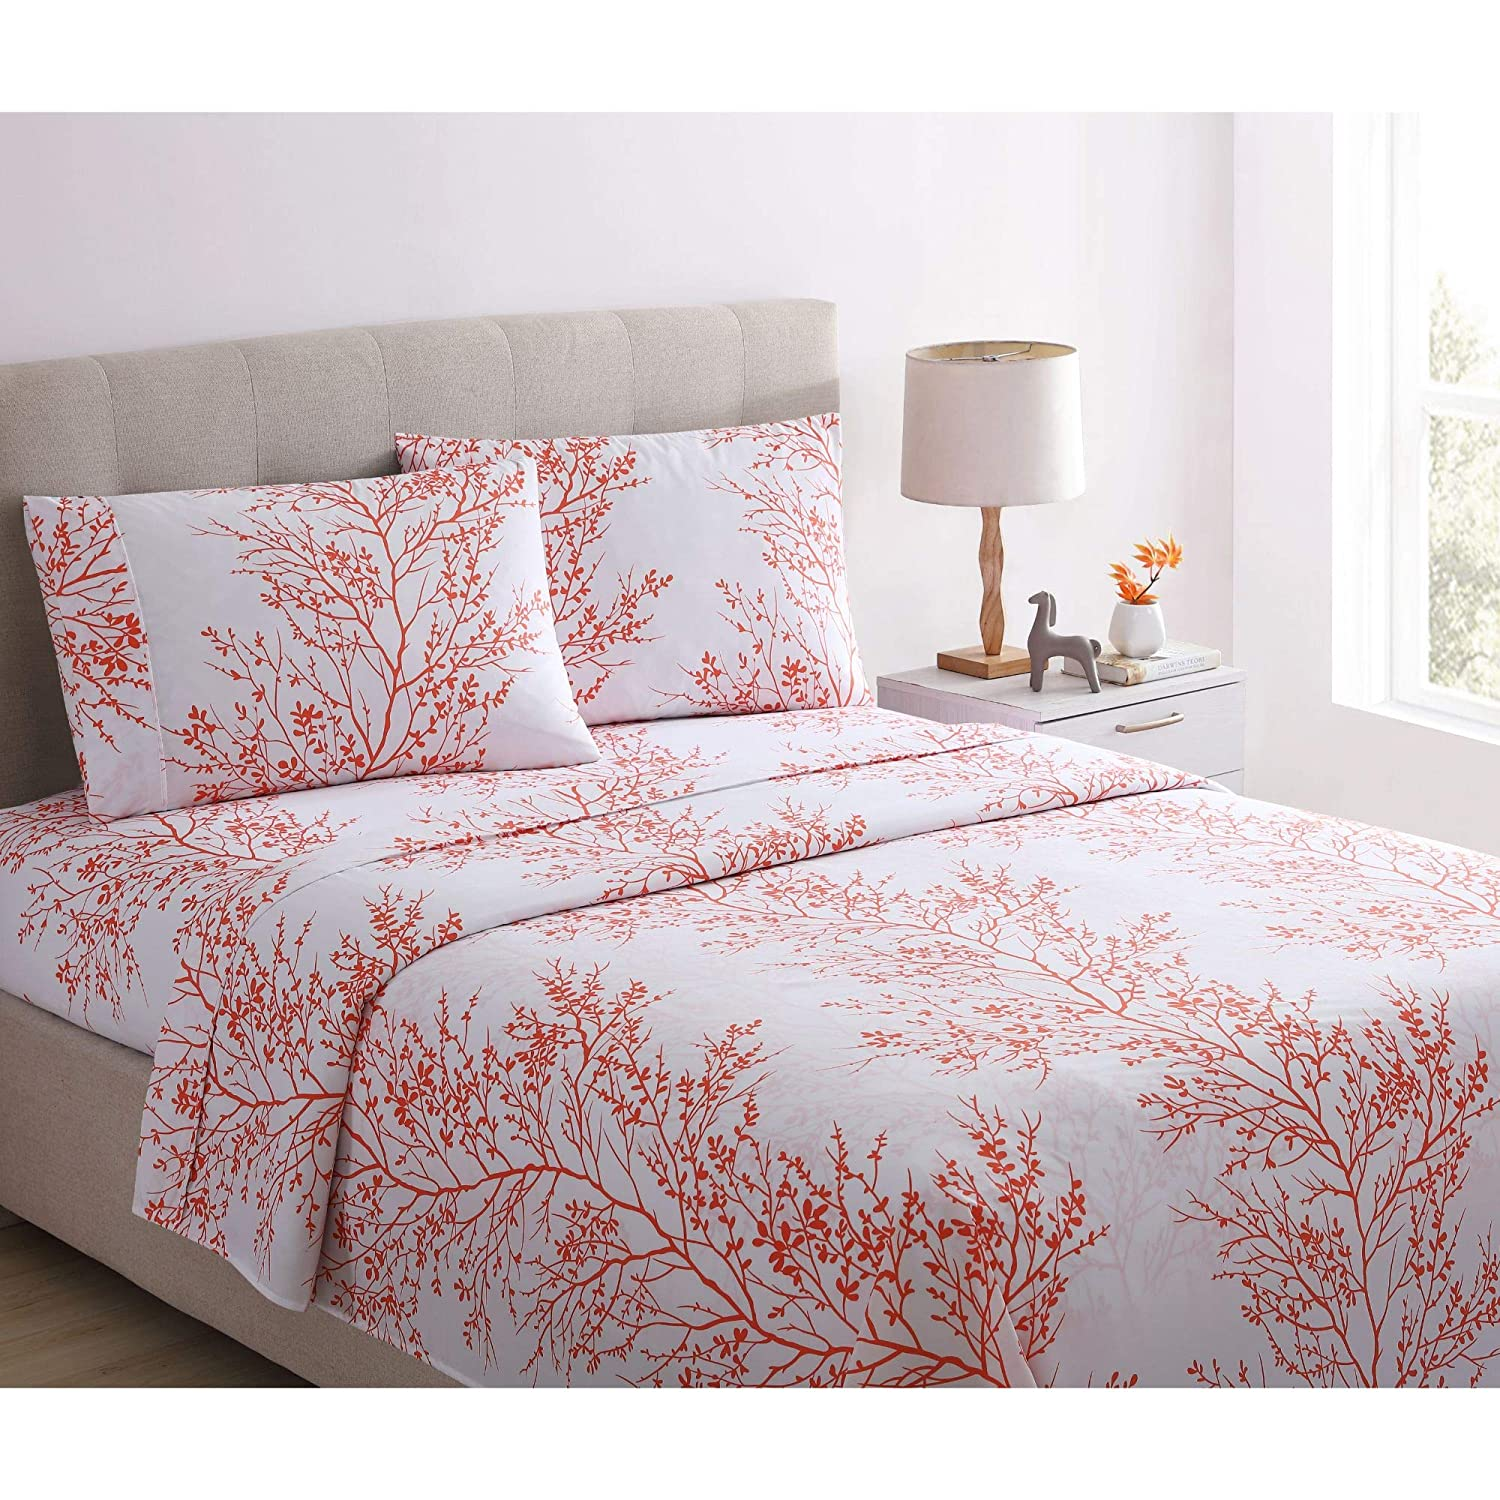 Spirit Linen Home 4pc Bed Sheets Set Printed Beautiful Foliage Design 1800 Bedding Soft Microfiber Sheet with Fitted Sheet and Pillowcases (King, Coral White)